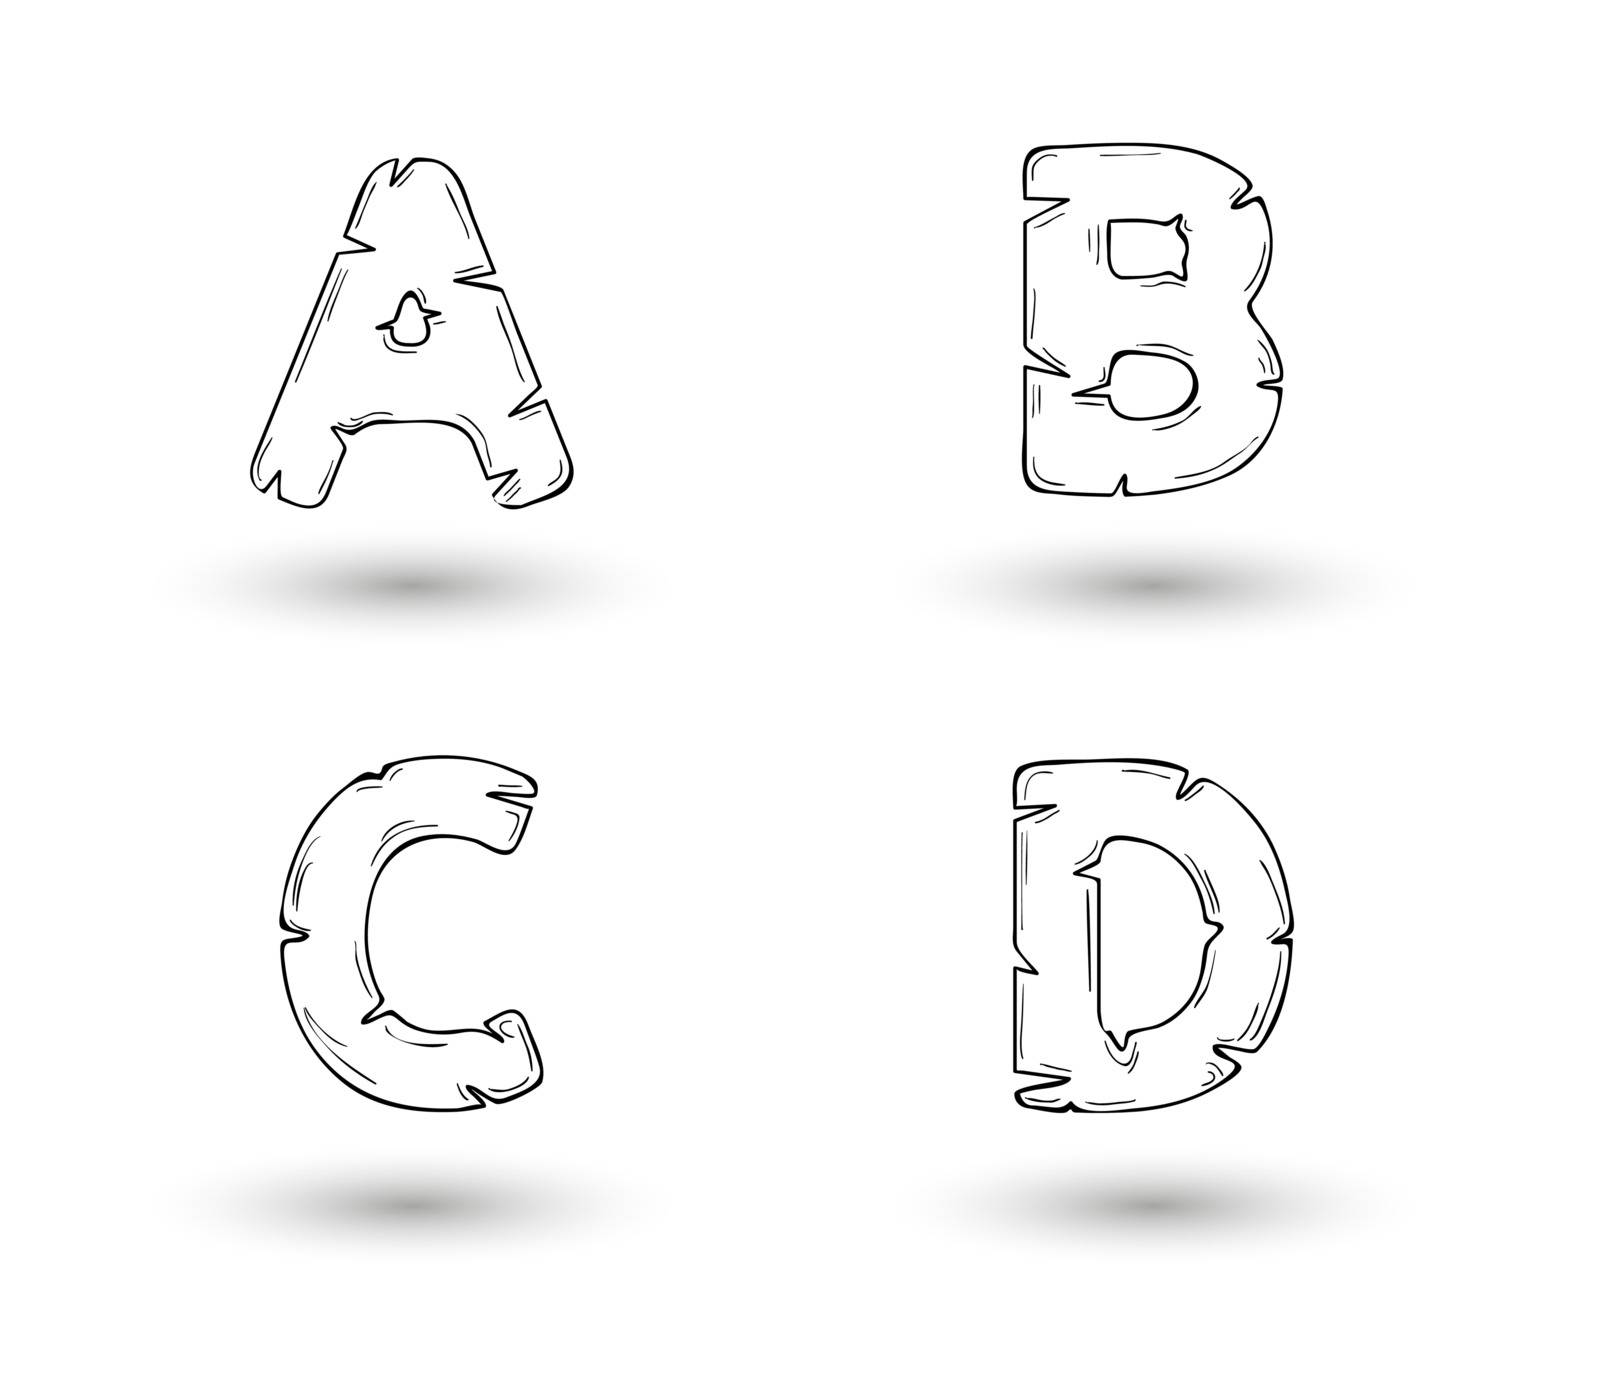 sketch jagged alphabet letters with shadow on white background, A, B, C, D